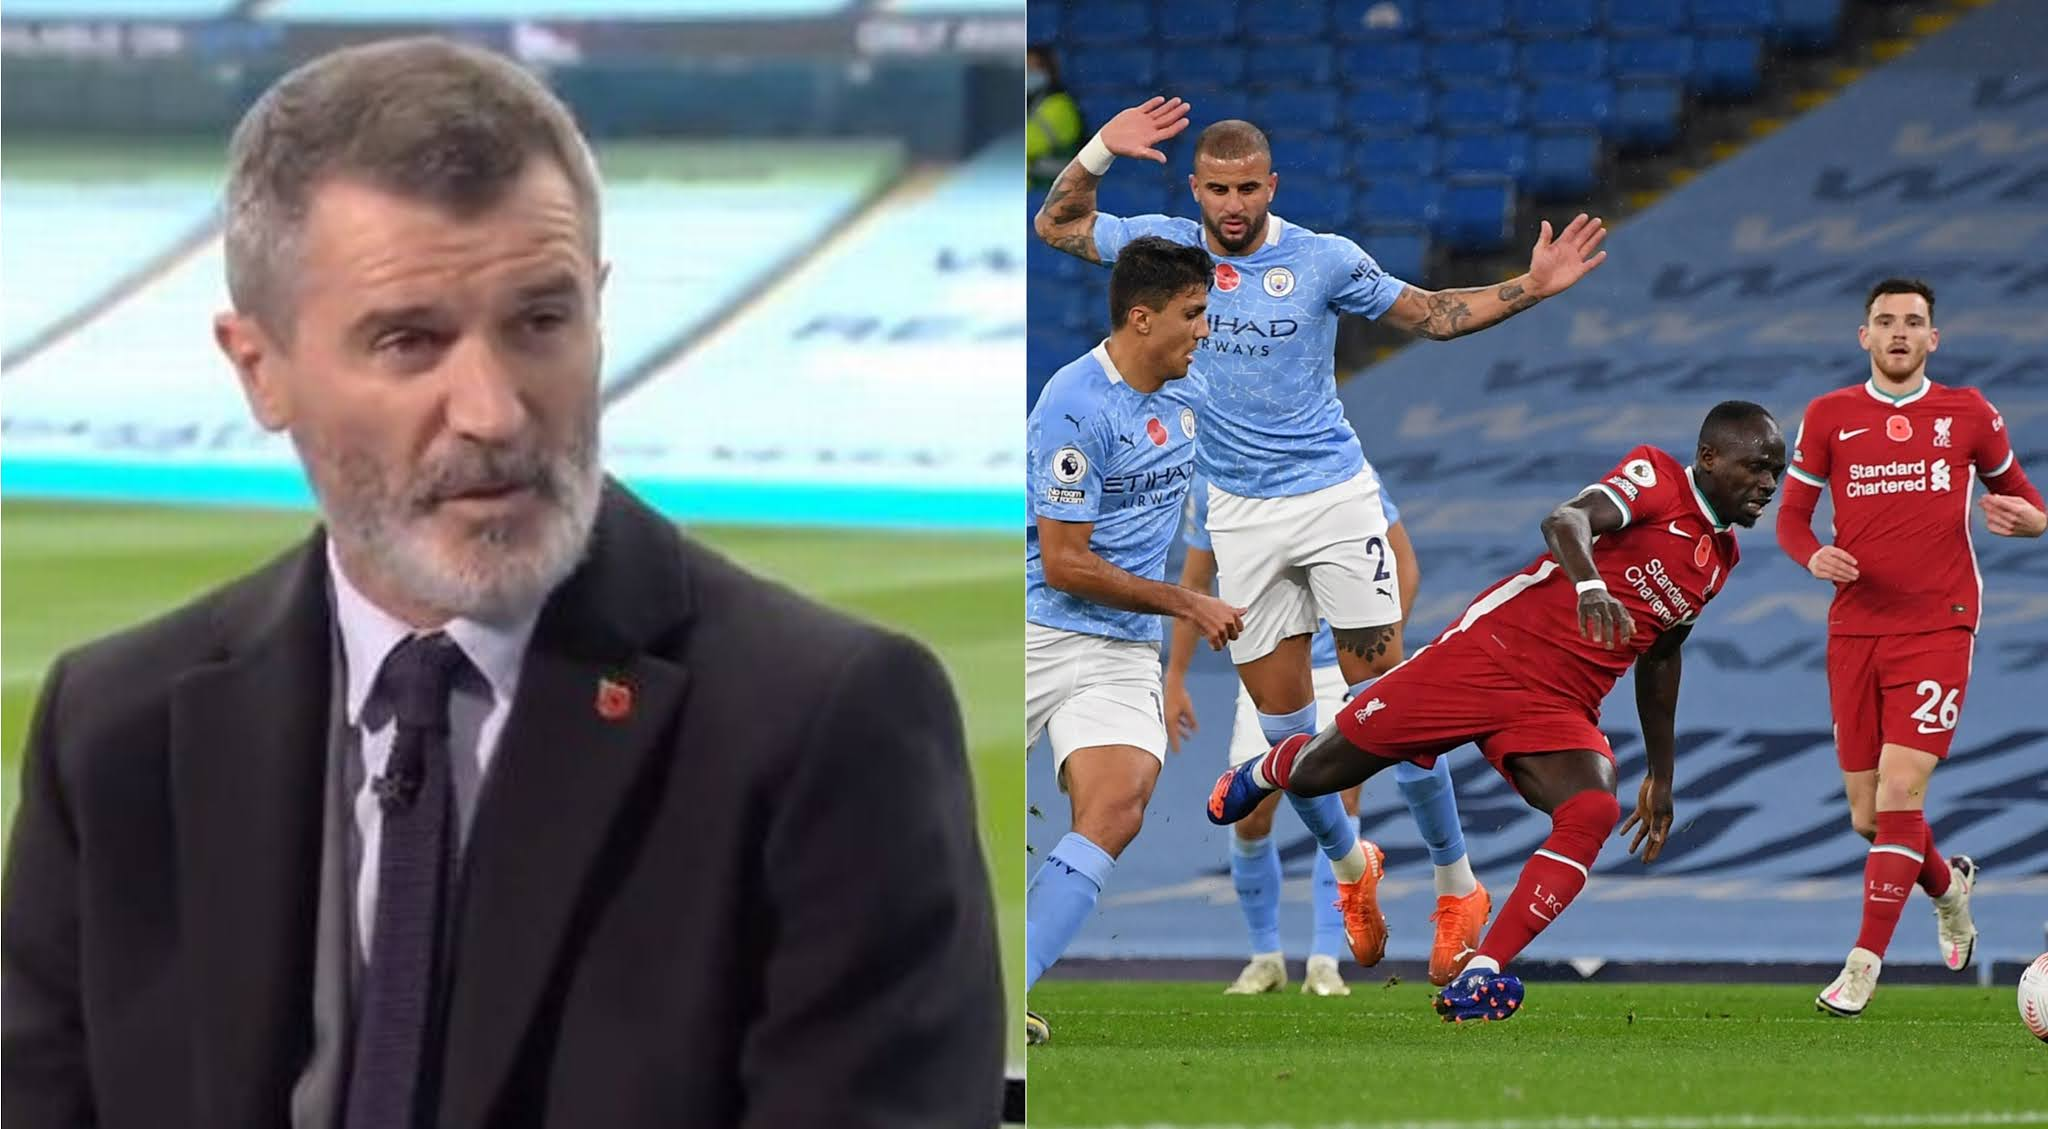 Roy Keane label Walker 'idiot' for challenge on Sadio Mane.